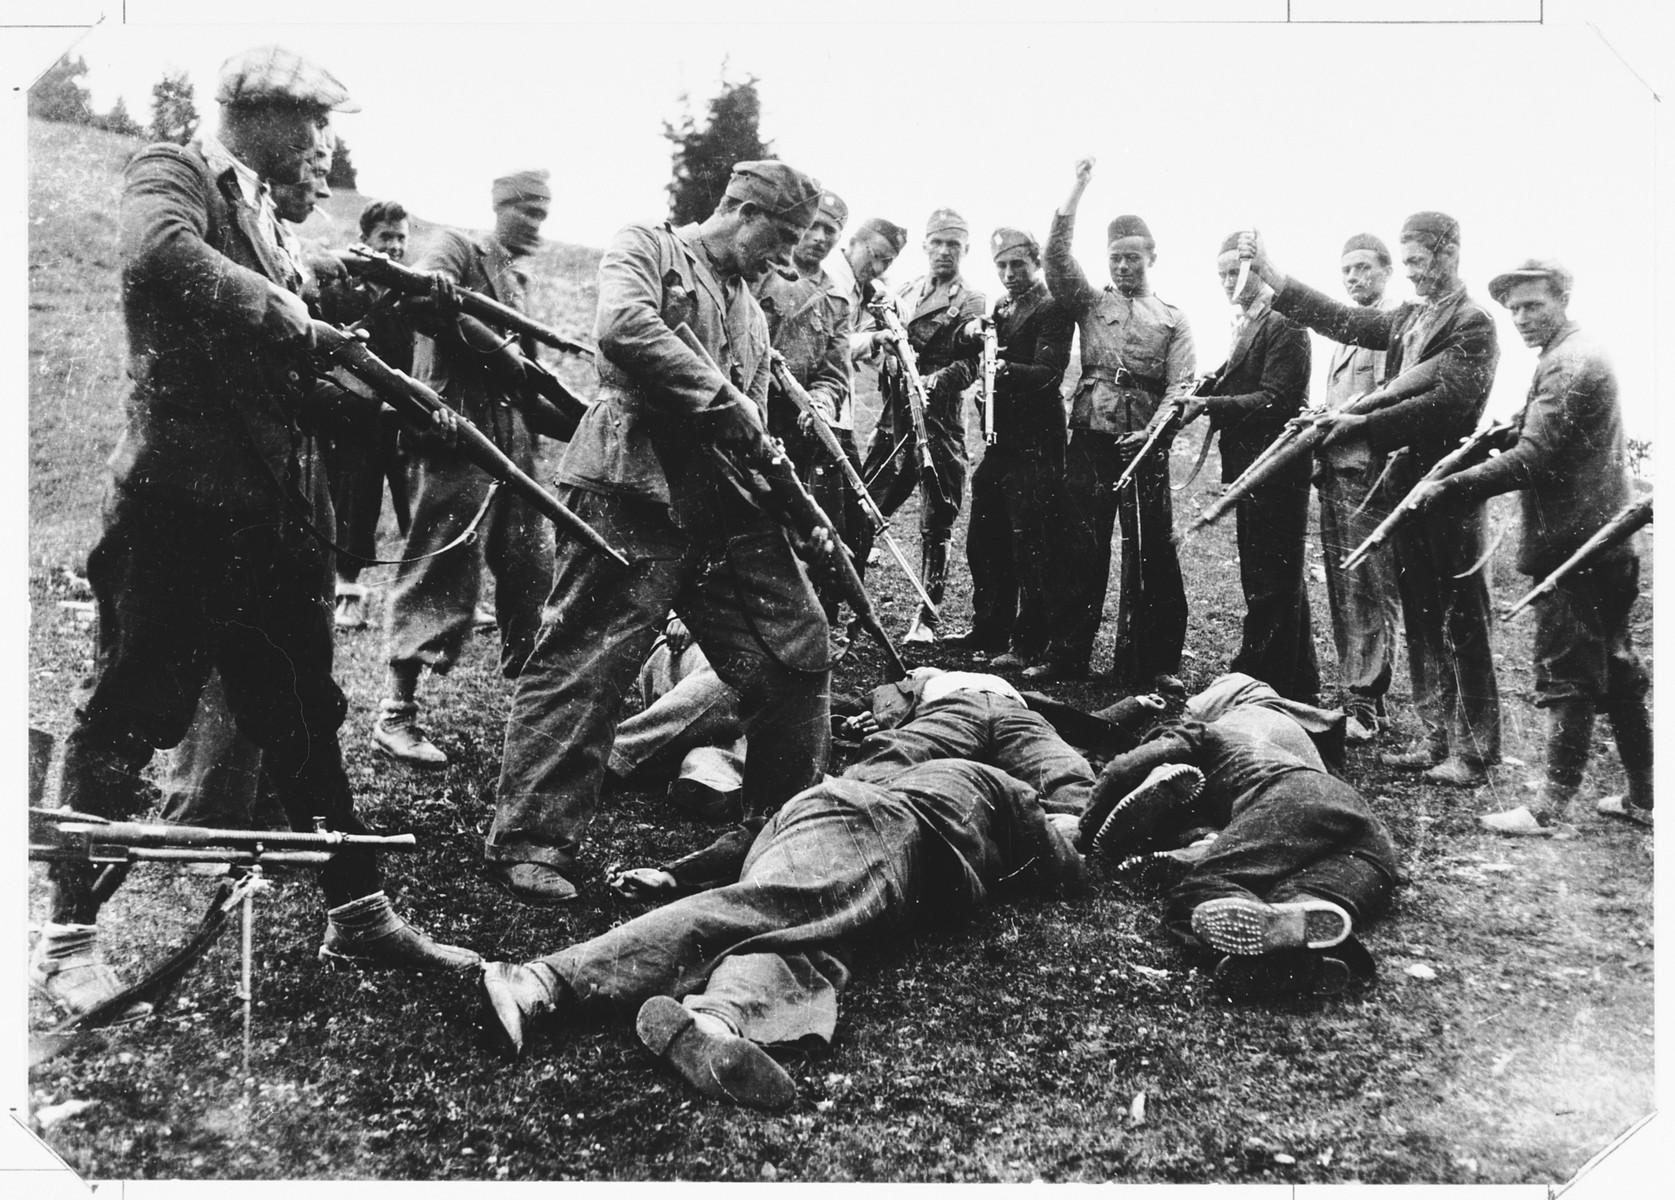 A unit of Ustasa militia point their rifles at a group of bodies lying at their feet.